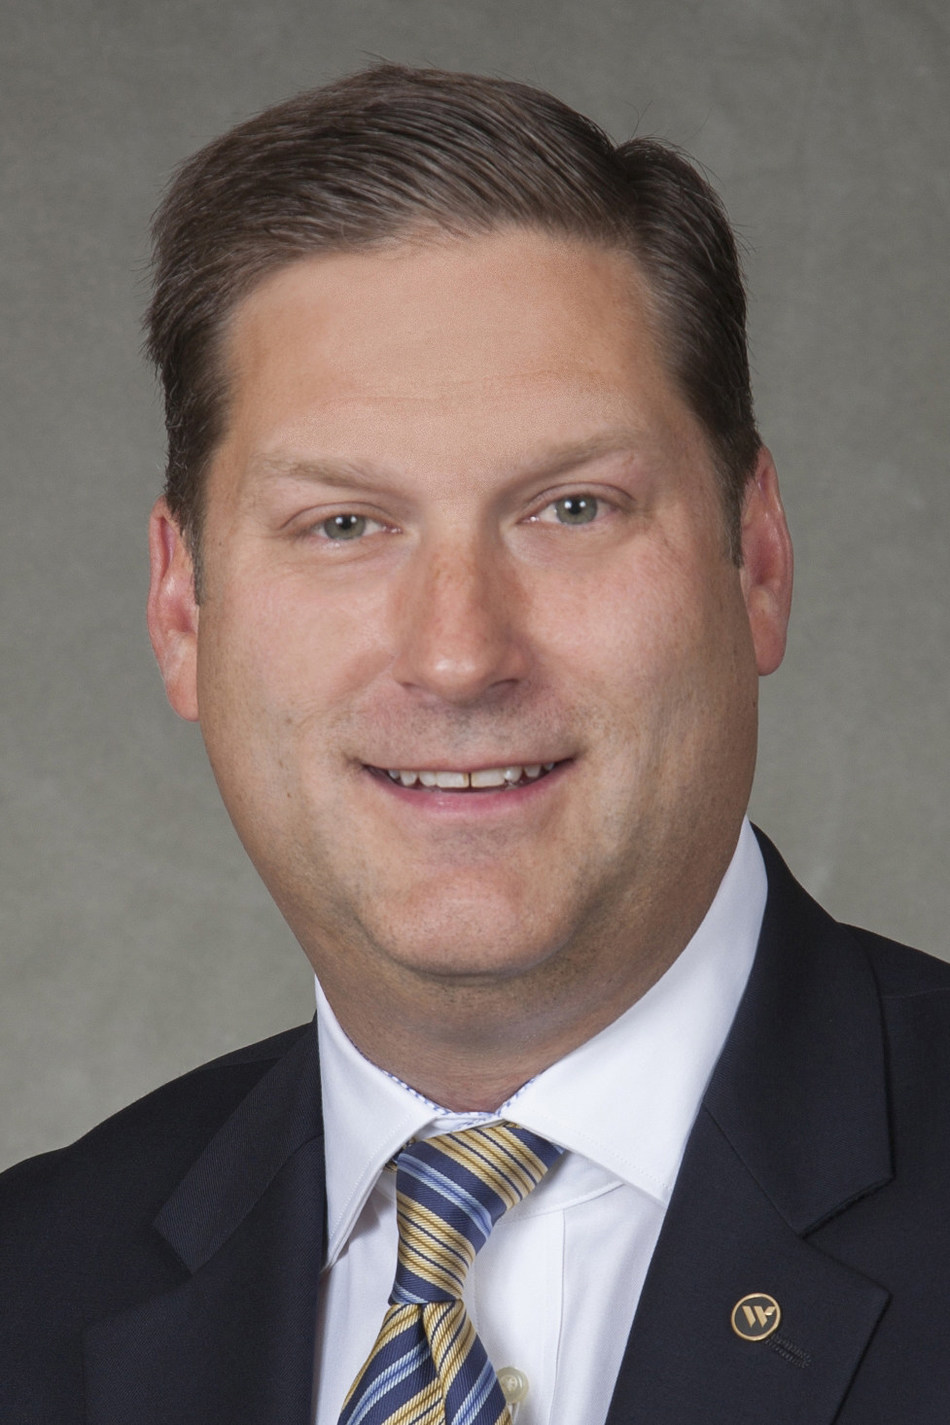 Christopher Motl named executive vice president, head of Commercial Banking at Webster Bank